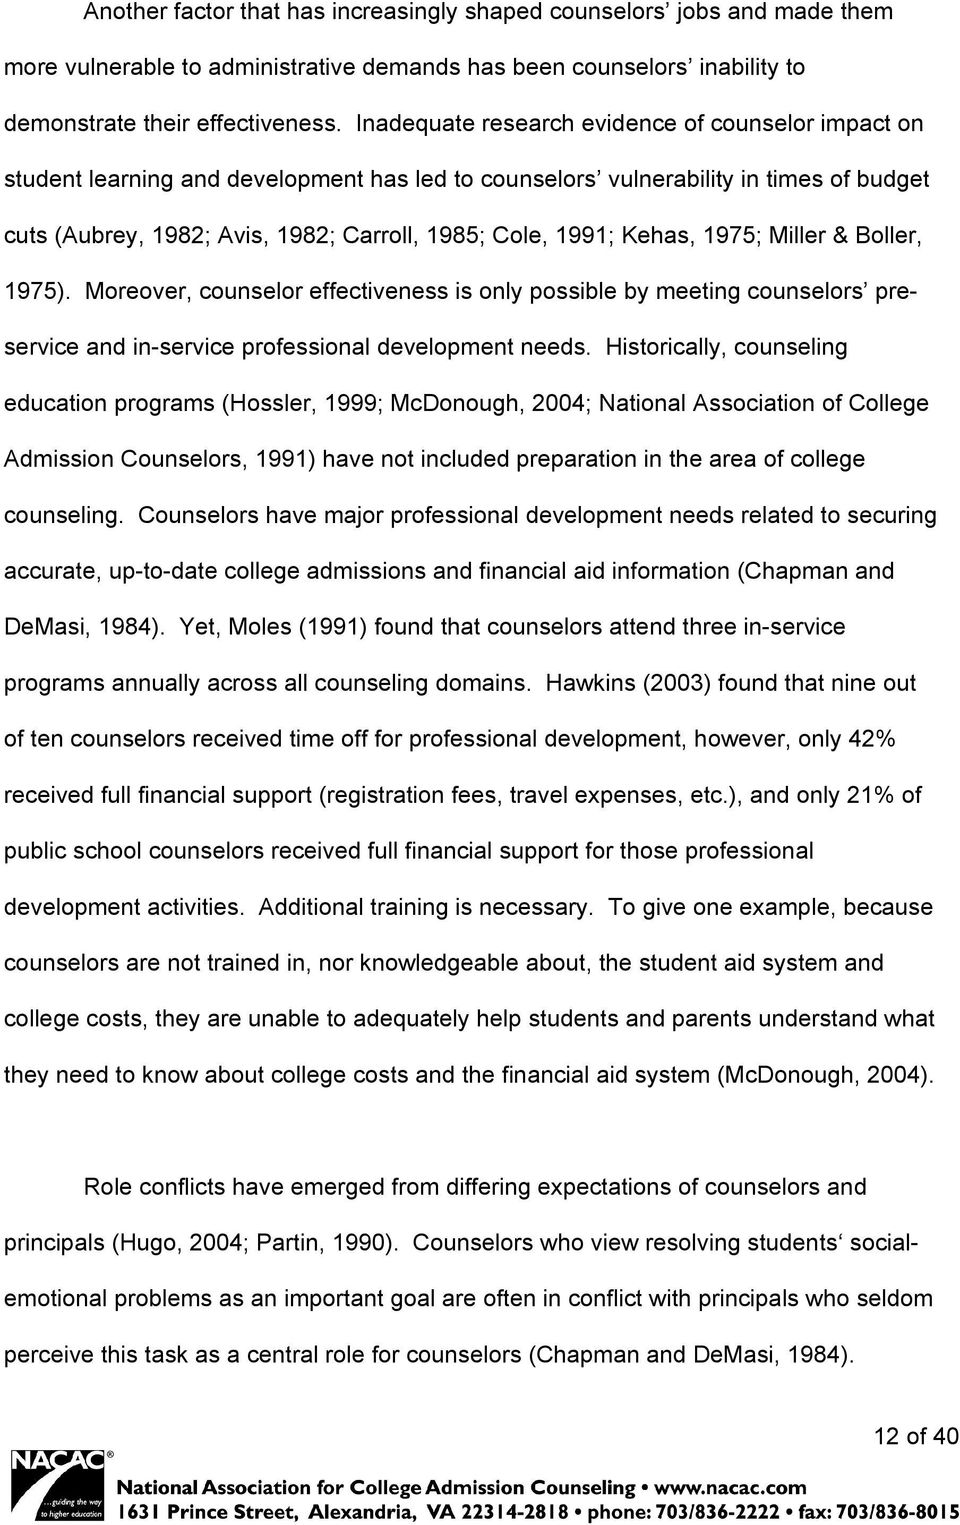 Kehas, 1975; Miller & Boller, 1975). Moreover, counselor effectiveness is only possible by meeting counselors preservice and in-service professional development needs.